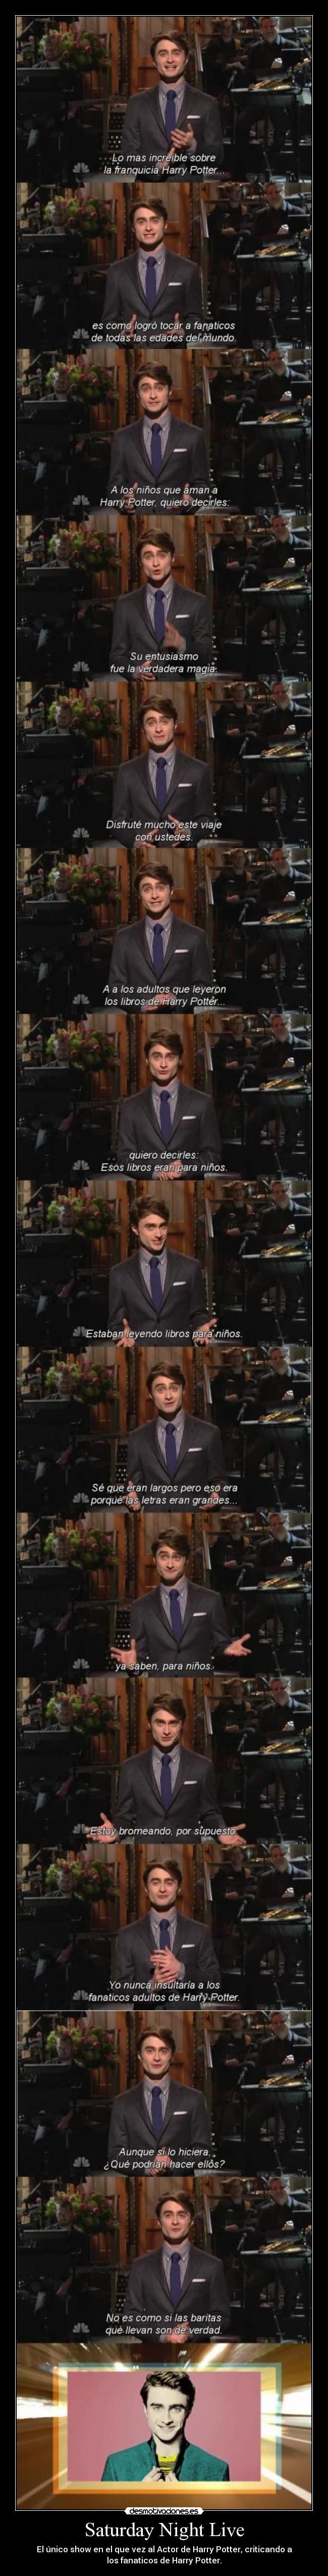 Saturday Night Live - El único show en el que vez al Actor de Harry Potter, criticando a los fanaticos de Harry Potter.